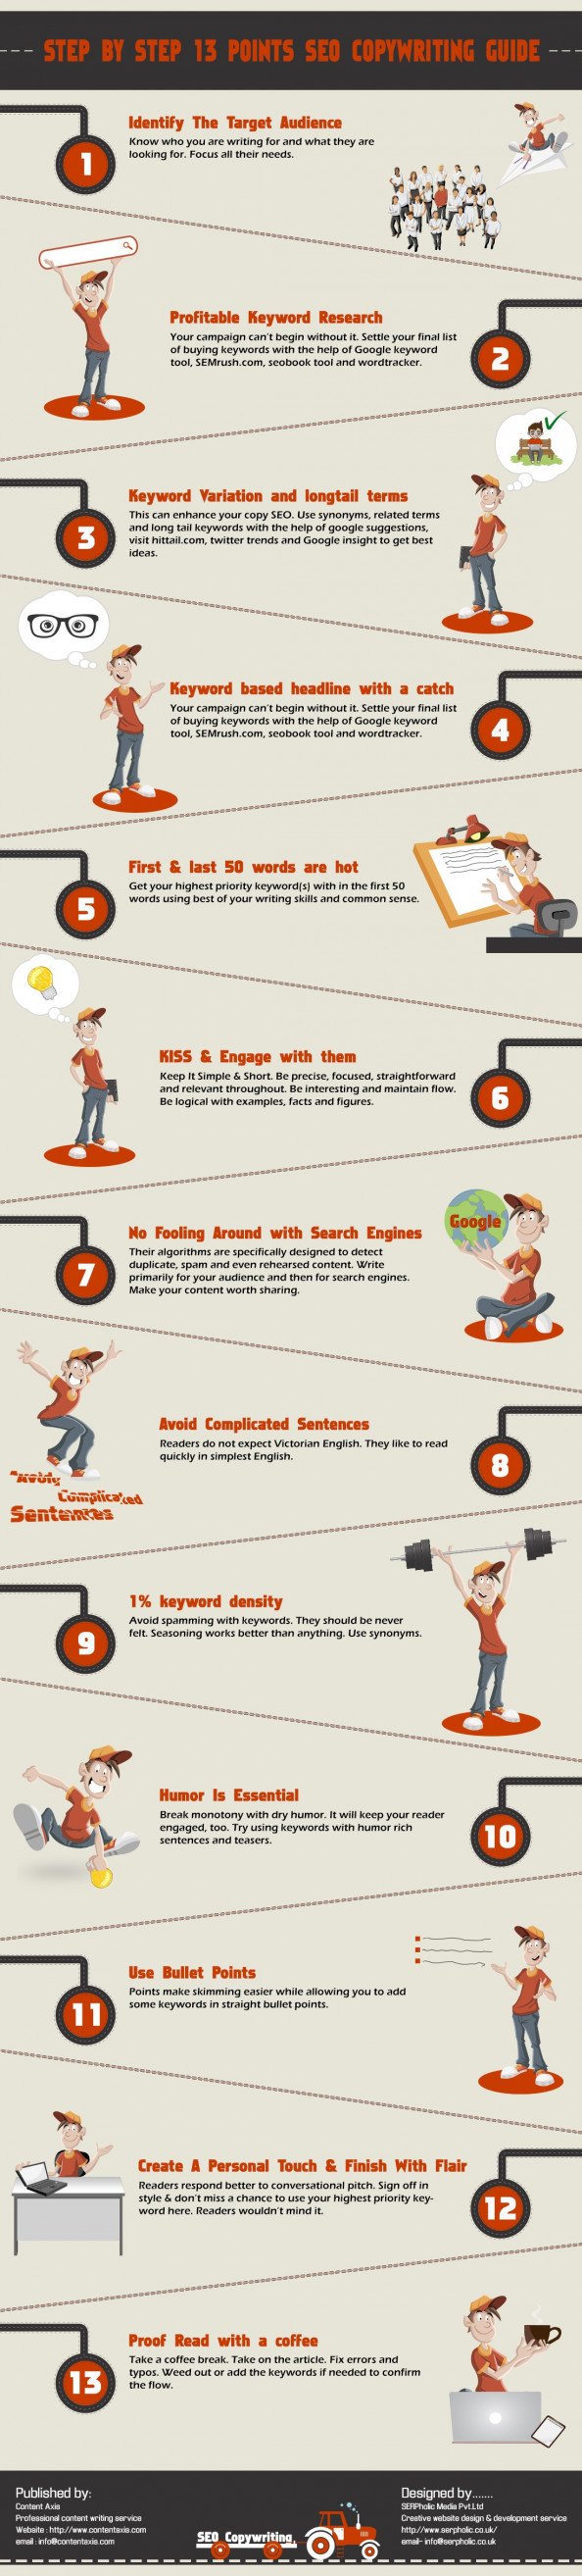 Step by Step 13 Points SEO Copywriting Guide Infographic